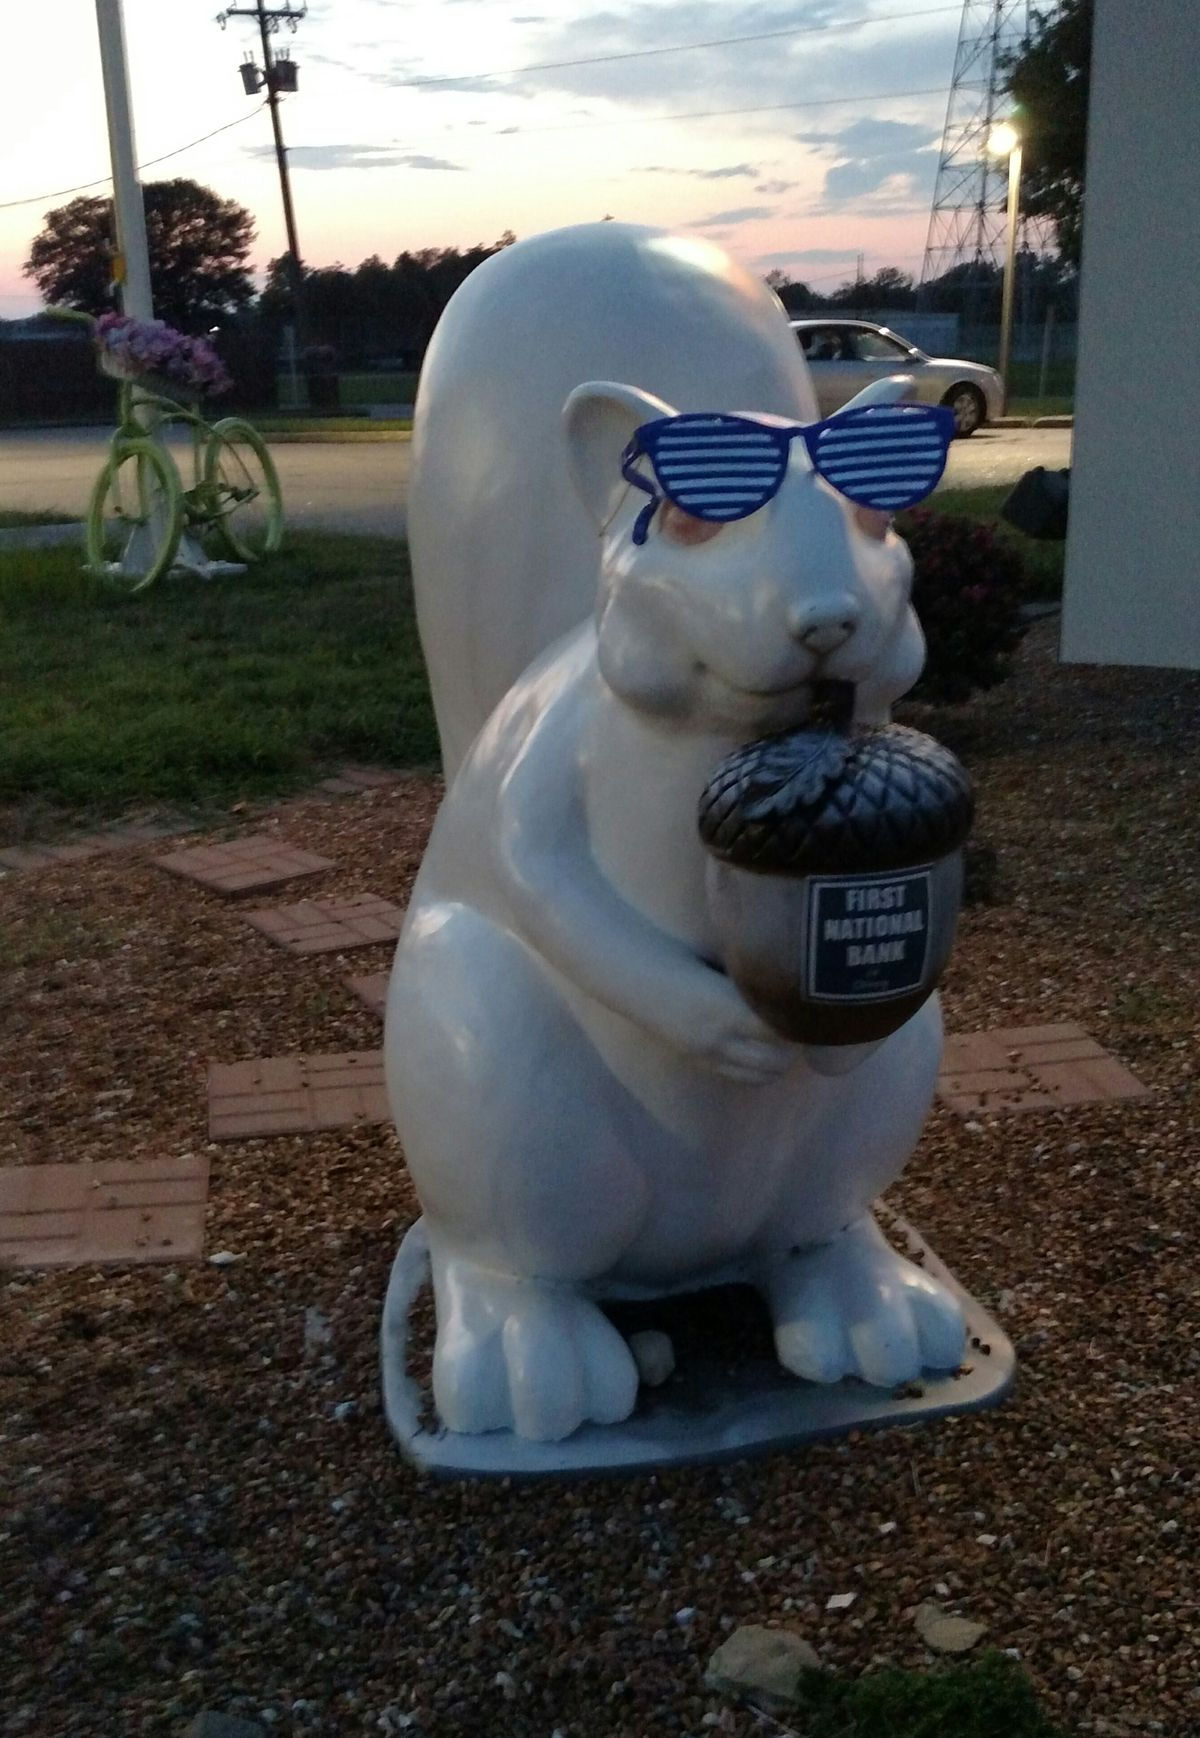 We saw no white squirrels in Olney, but we did find this fiberglass statue by a nearby bank.<br>Credit: Dale Bowman